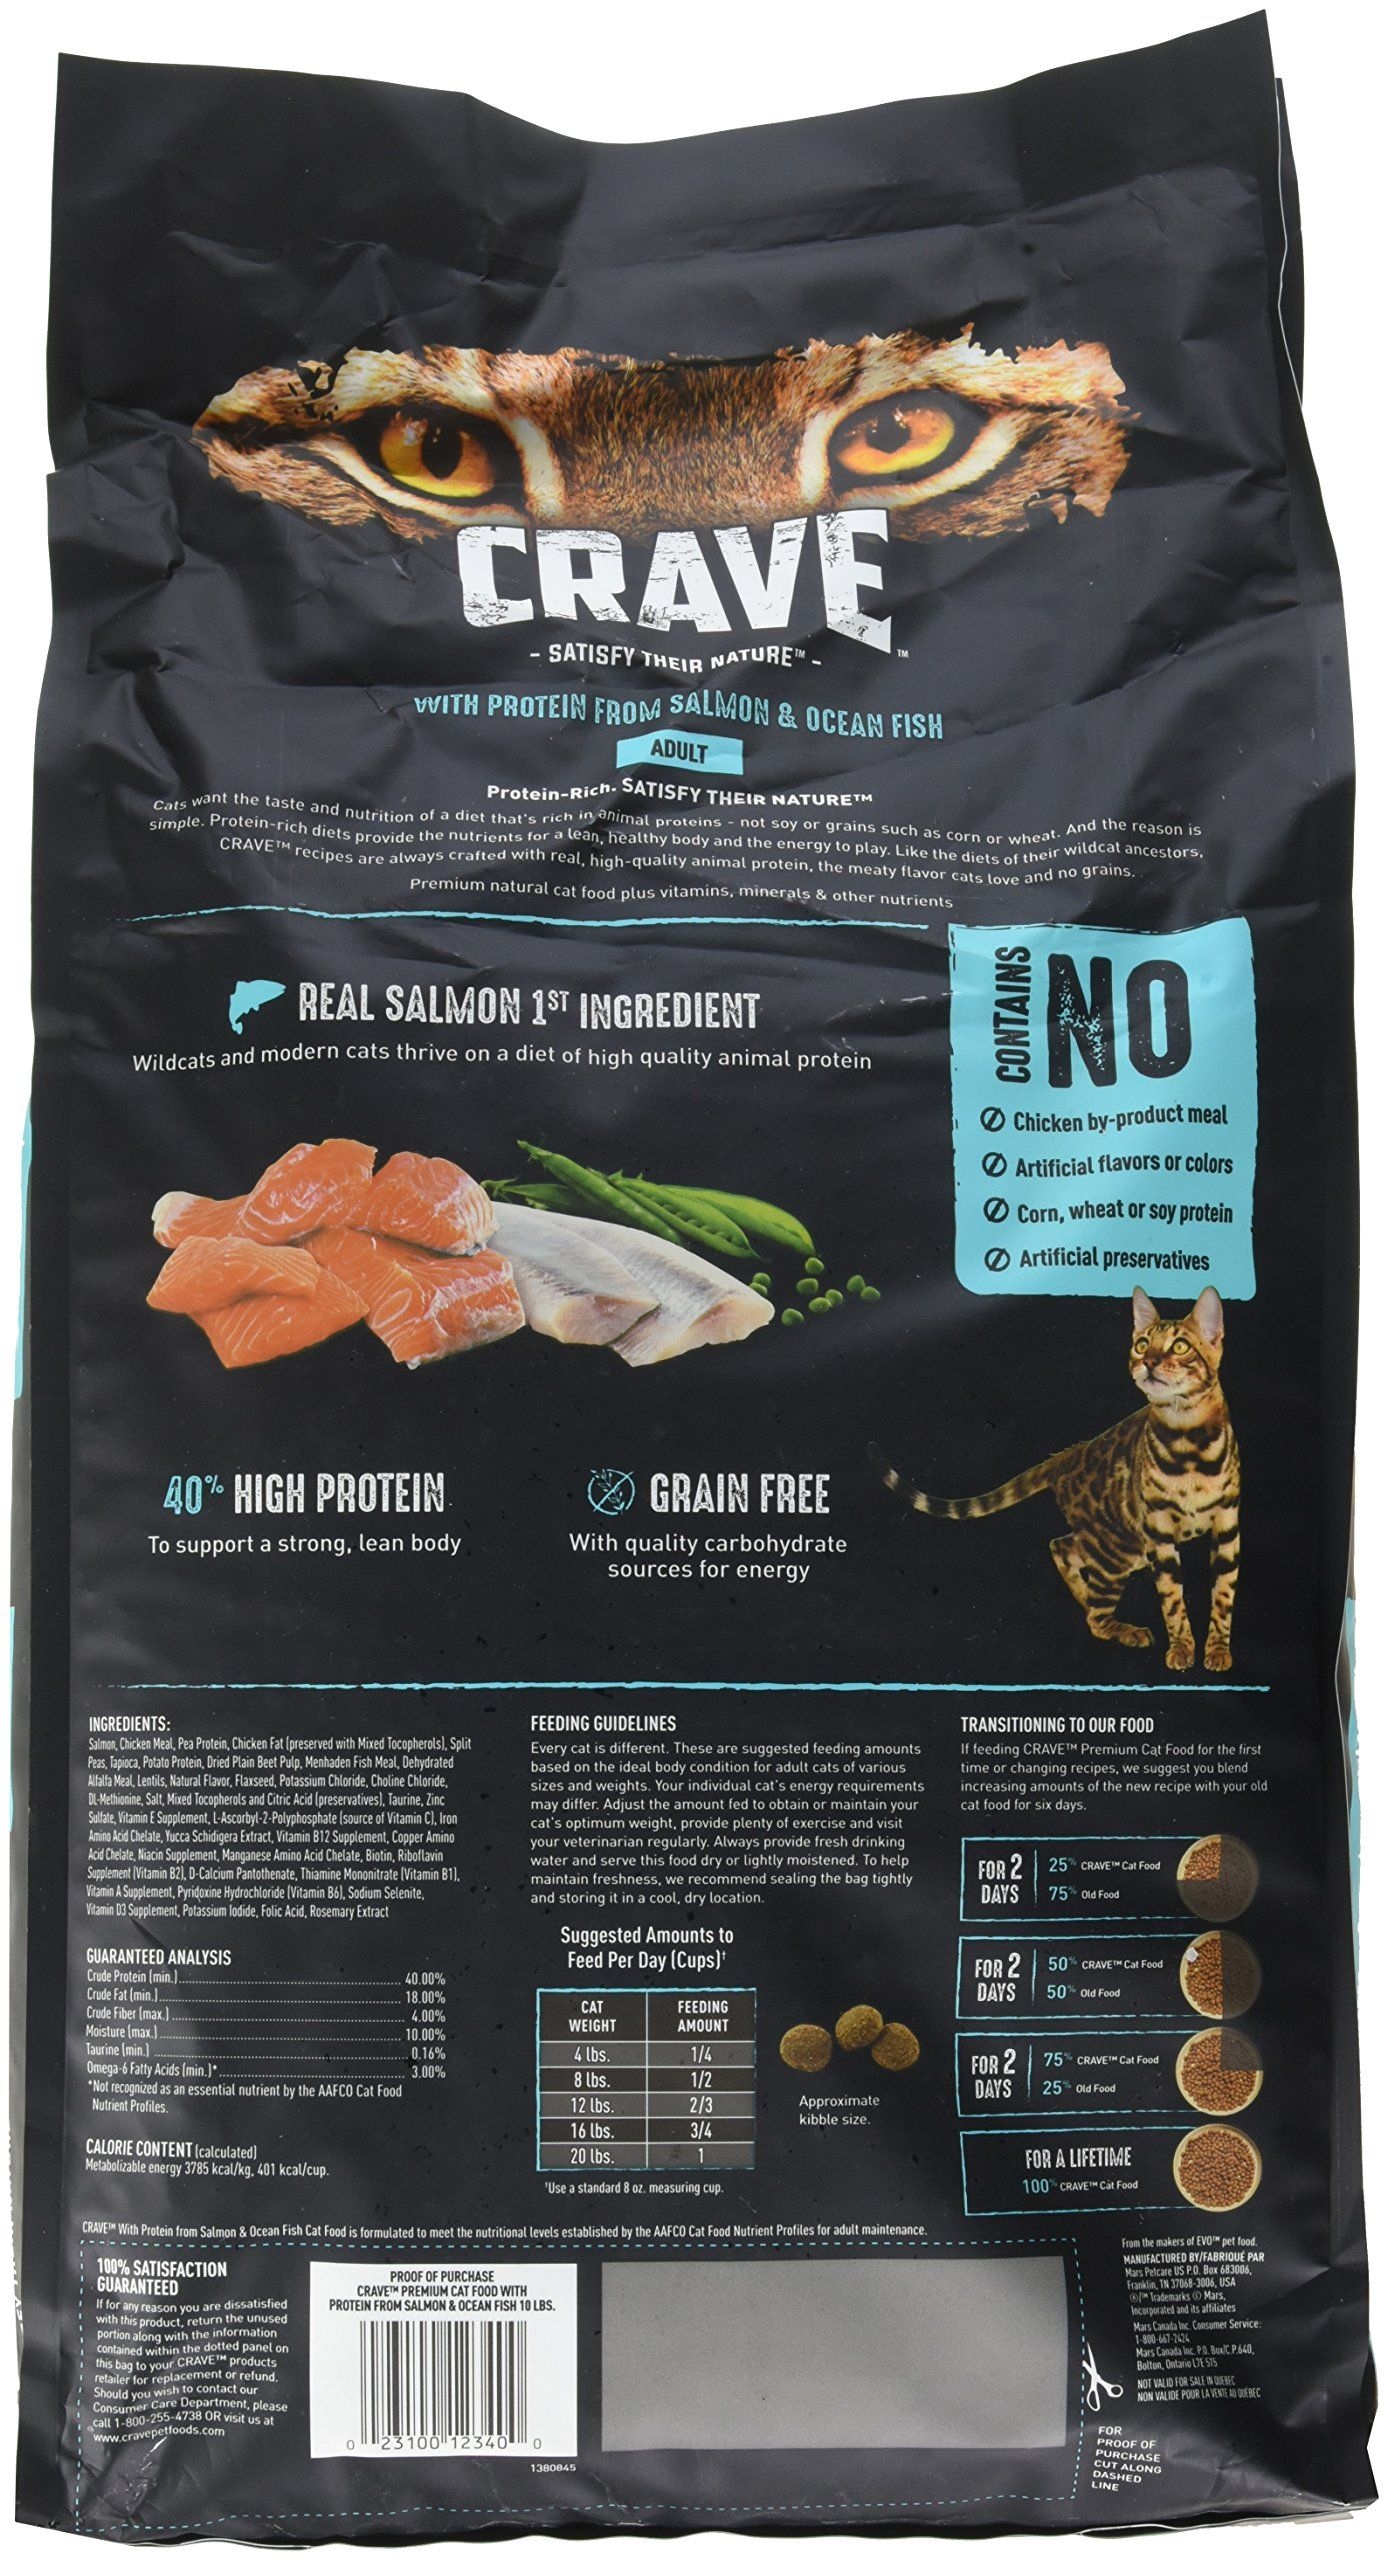 Crave Grain Free Dry Cat Food With Protein From Salmon And Ocean Fish Bag With Bonus Magnetic Feeding Guidelines 2 Lb Pack Dry Cat Food Best Cat Food Cat Food